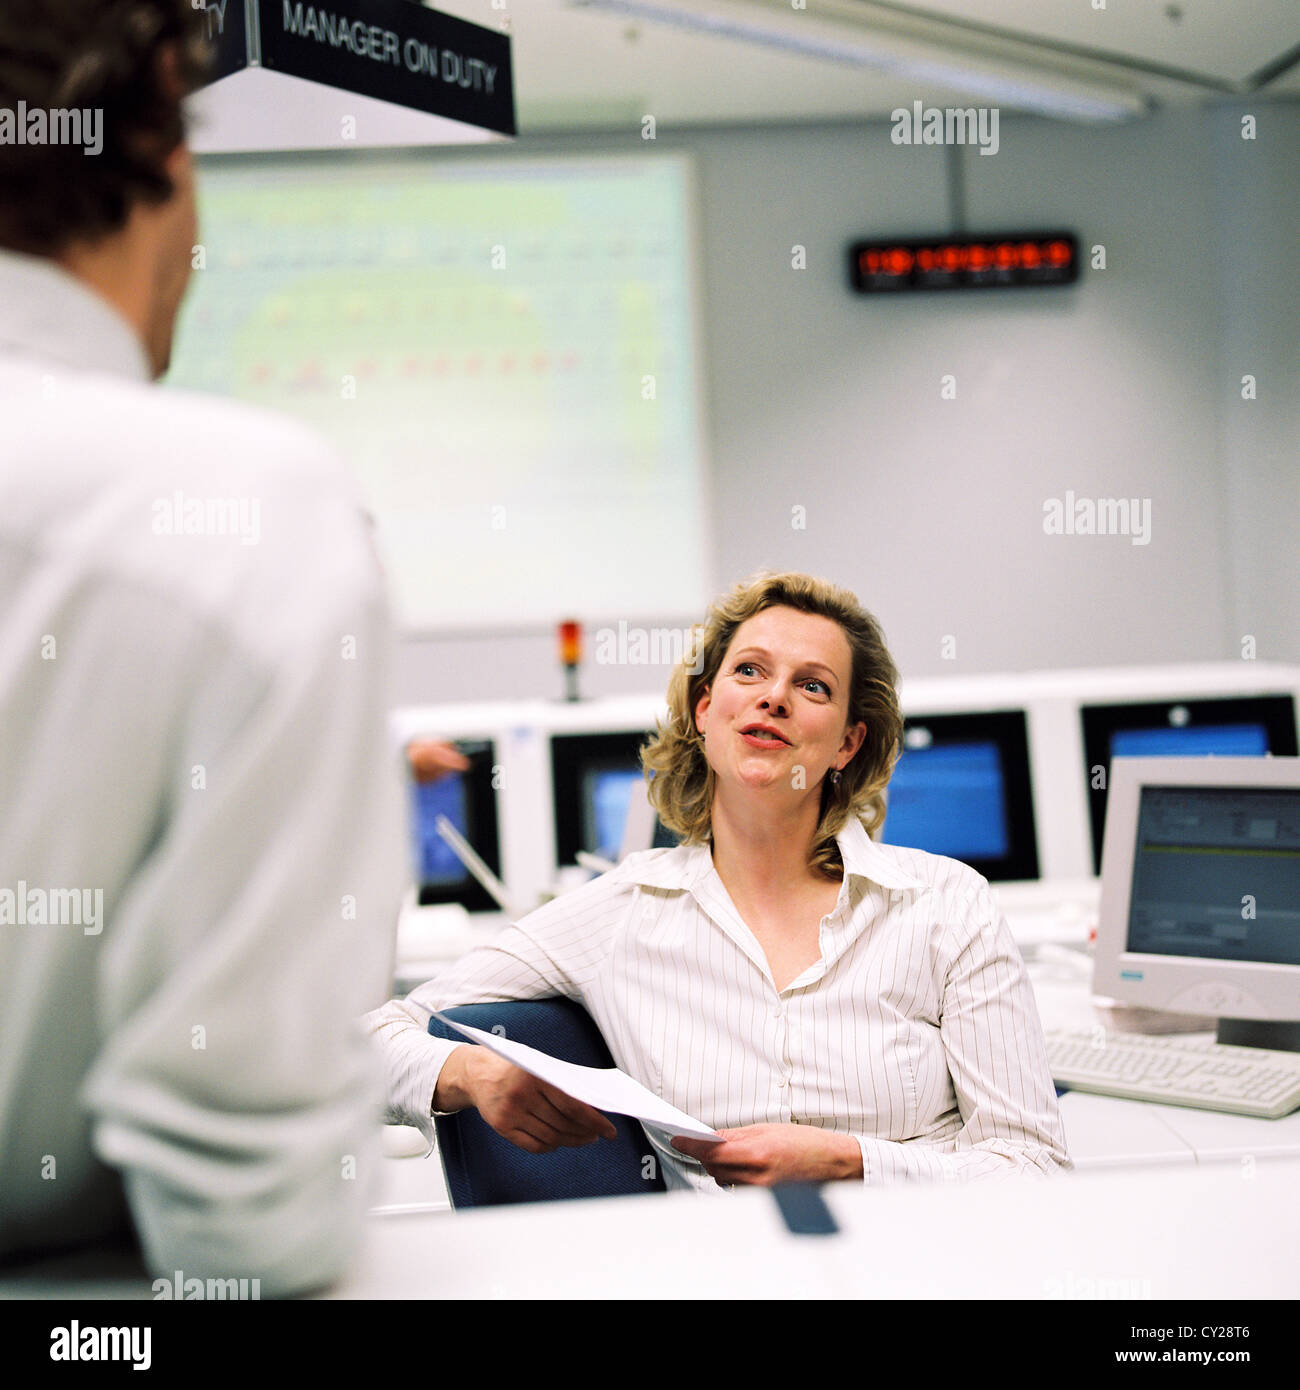 business people data center control center man woman License free except ads and outdoor billboards Stock Photo